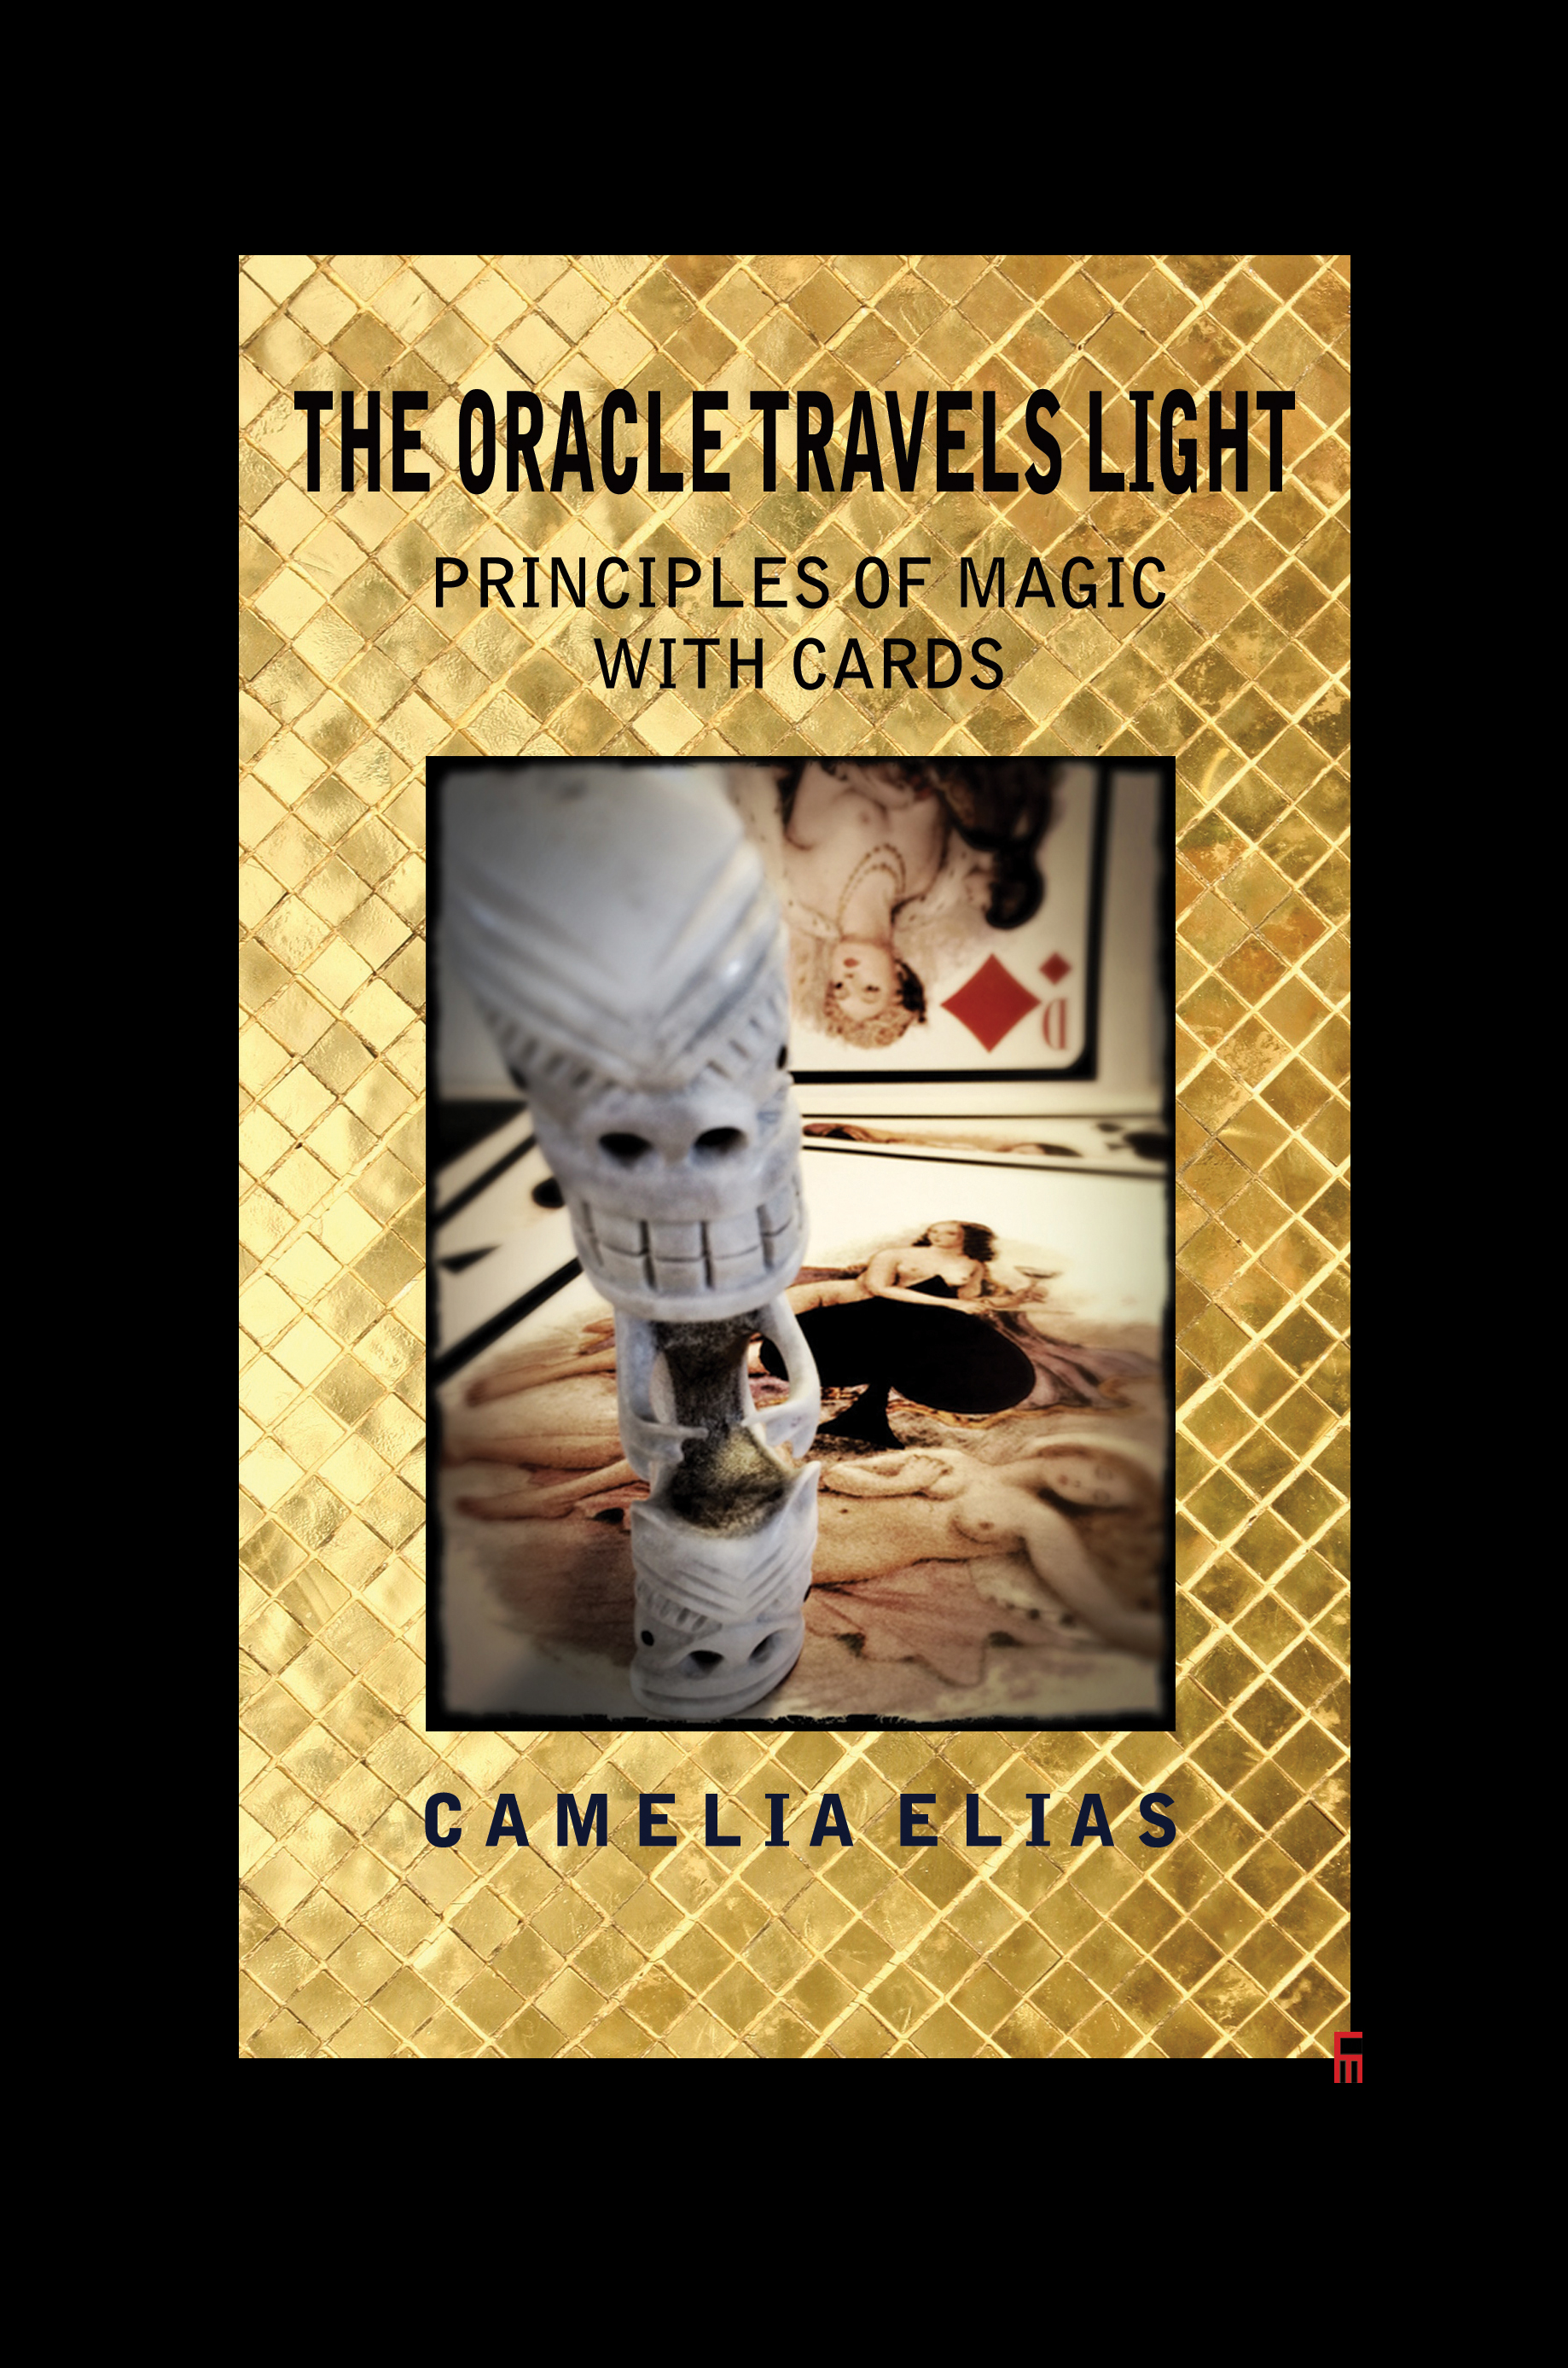 camelia elias, oracle travels light, magic, cartomancy, tarot